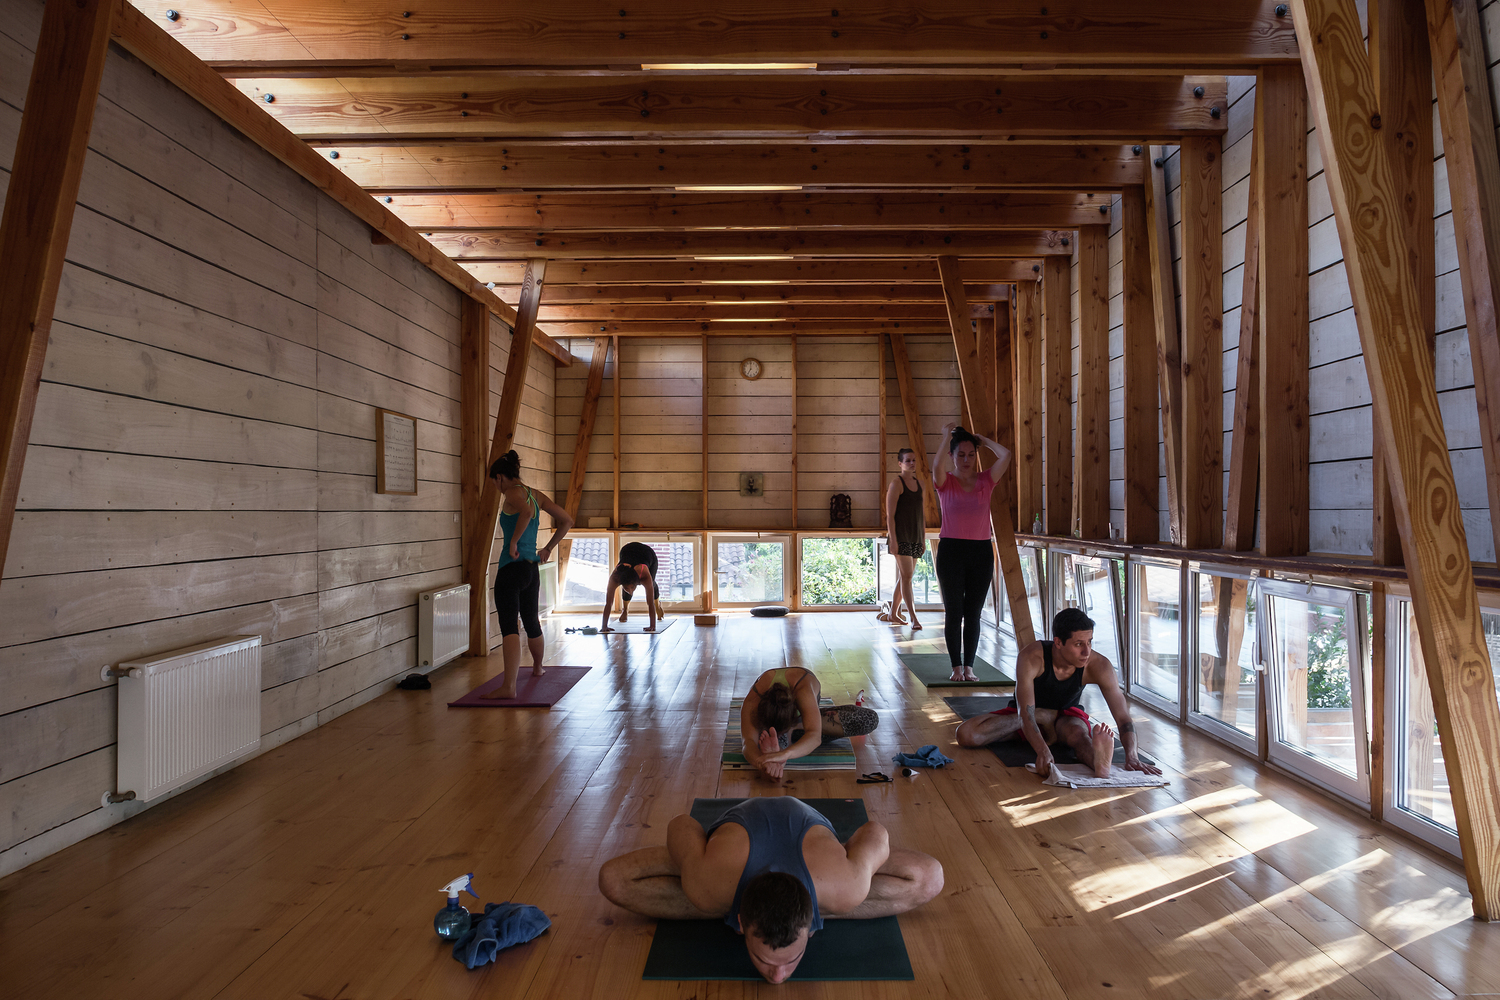 Salones Spa The Key Architectural Elements Required To Design Yoga And